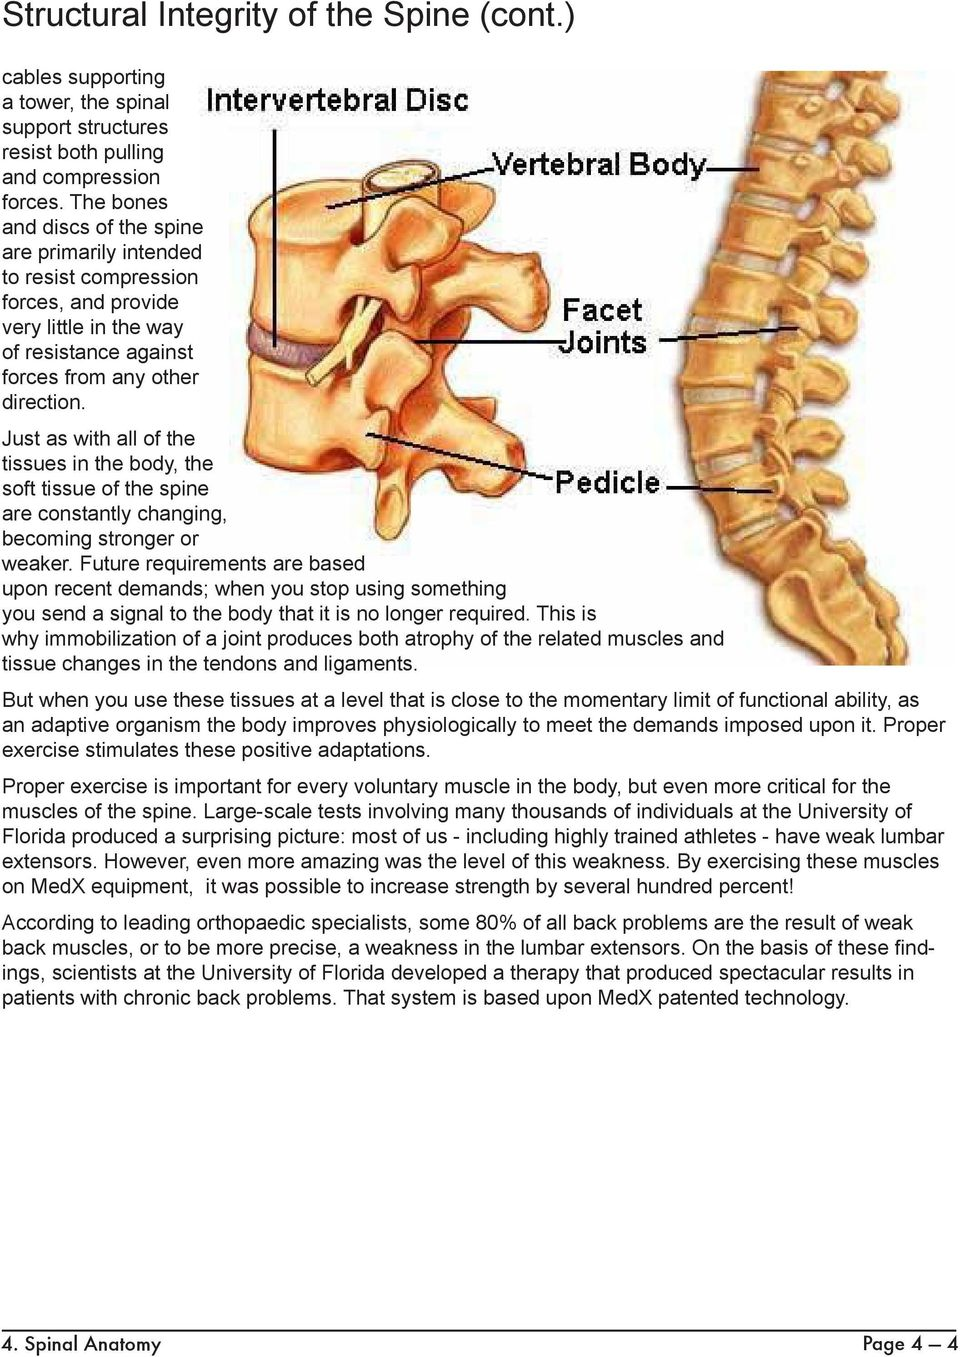 Just as with all of the tissues in the body, the soft tissue of the spine are constantly changing, becoming stronger or weaker.